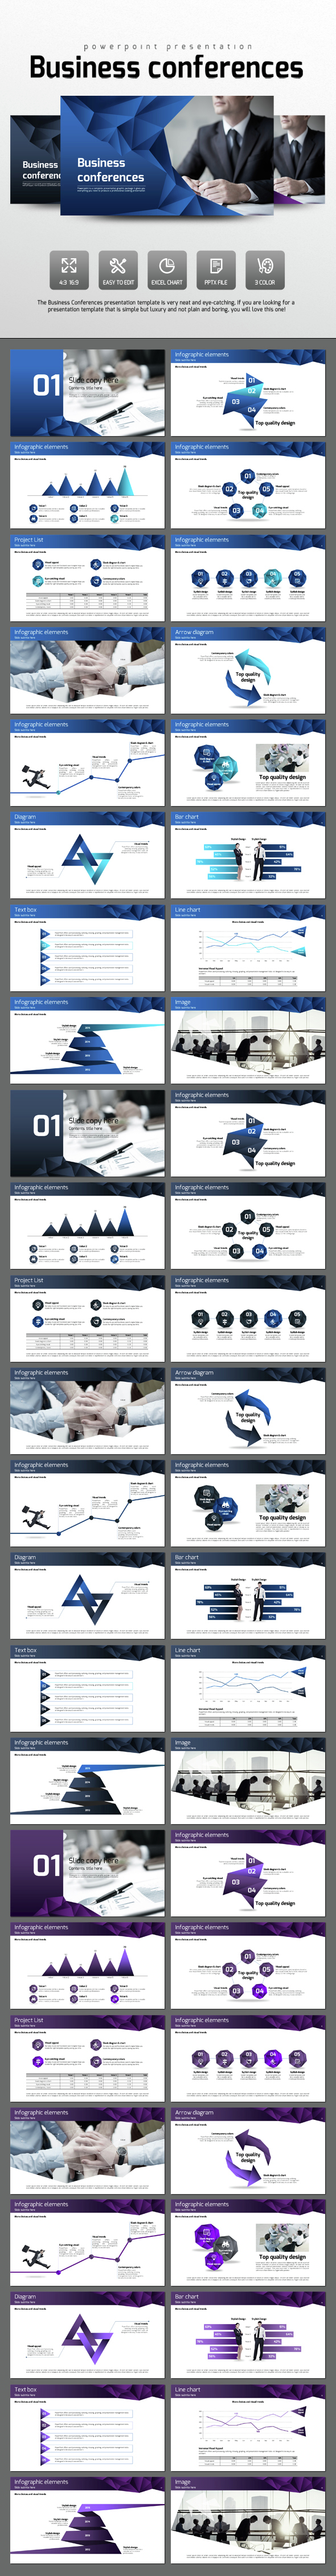 Business Conferences - PowerPoint Templates Presentation Templates